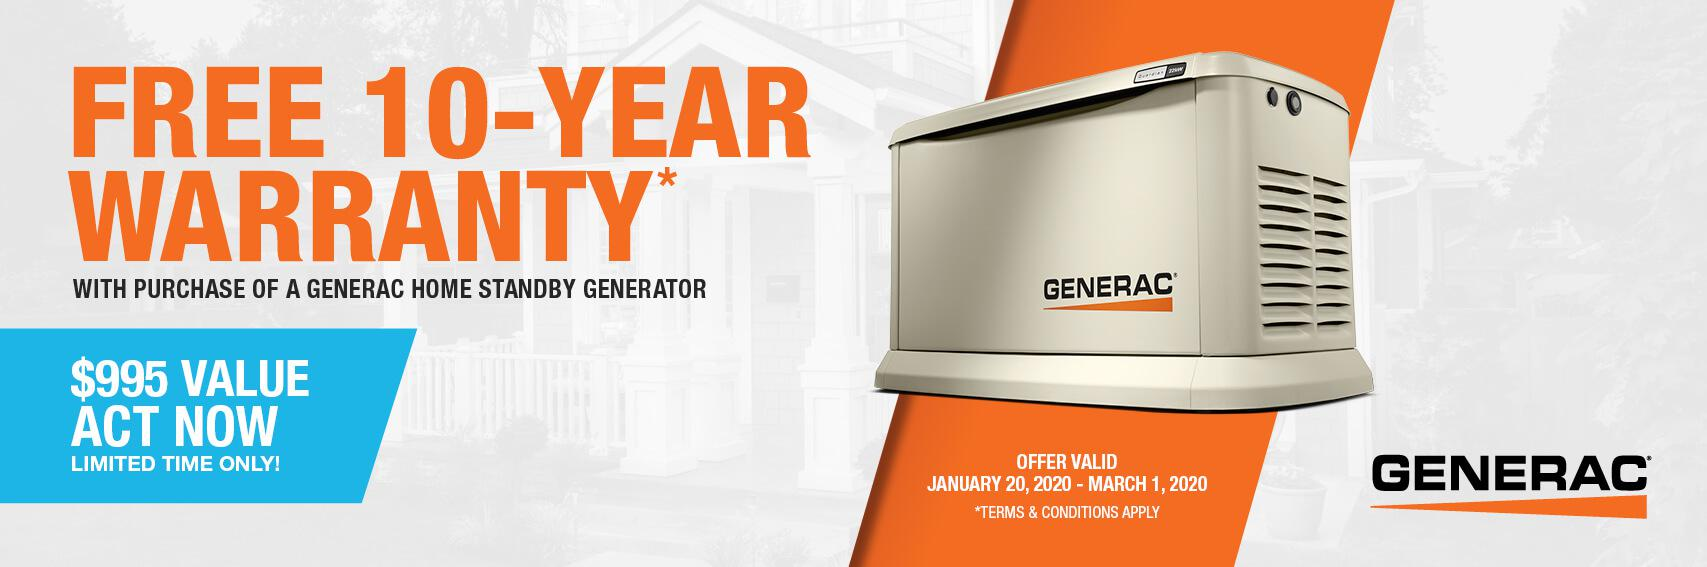 Homestandby Generator Deal | Warranty Offer | Generac Dealer | Jackson, CA